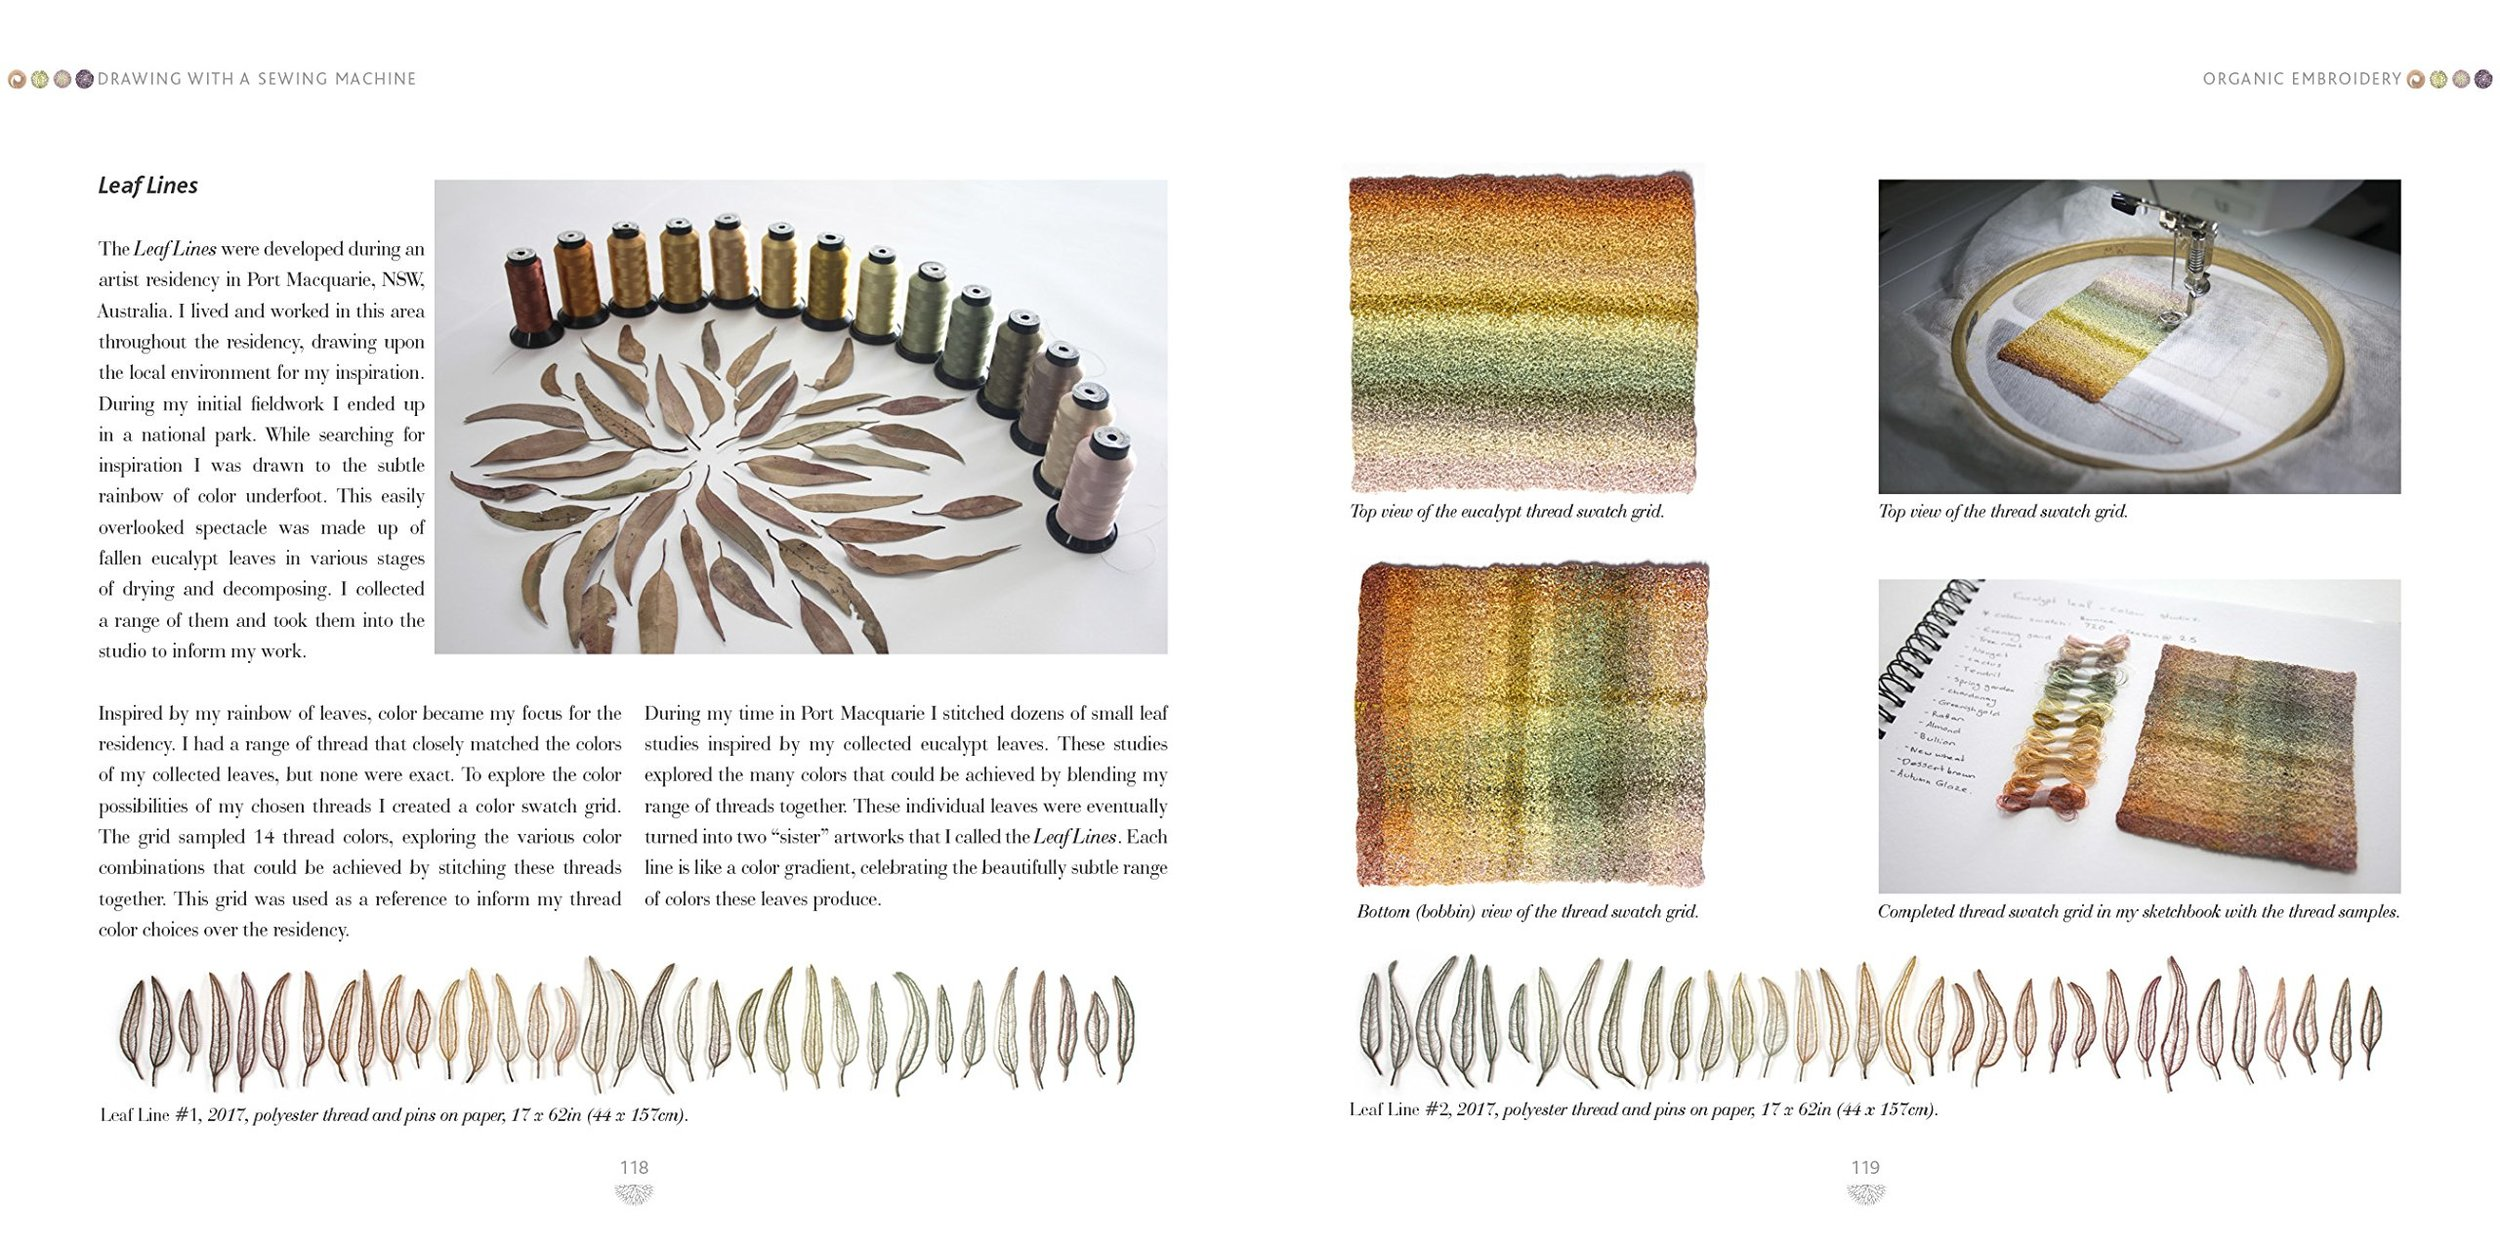 Organic embroidery Meredith Woolnough sample page 3.jpg